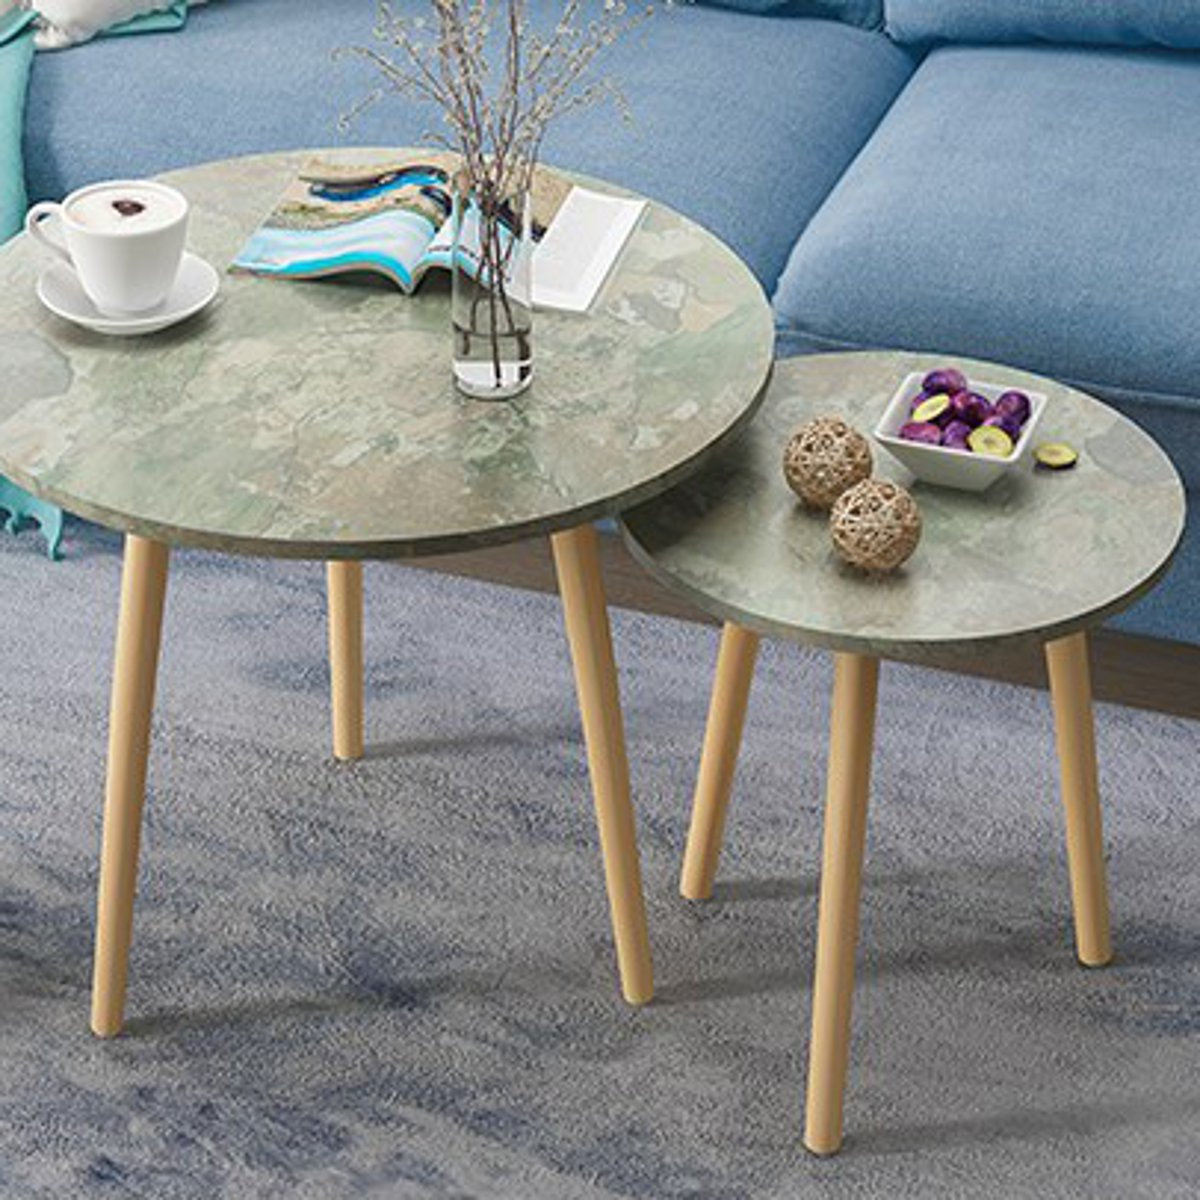 Fashion Coffee Tables Simple Mini Nordic Convenient Sofa Modern Circular Practical Natural Tea Tables Living Room Decoration